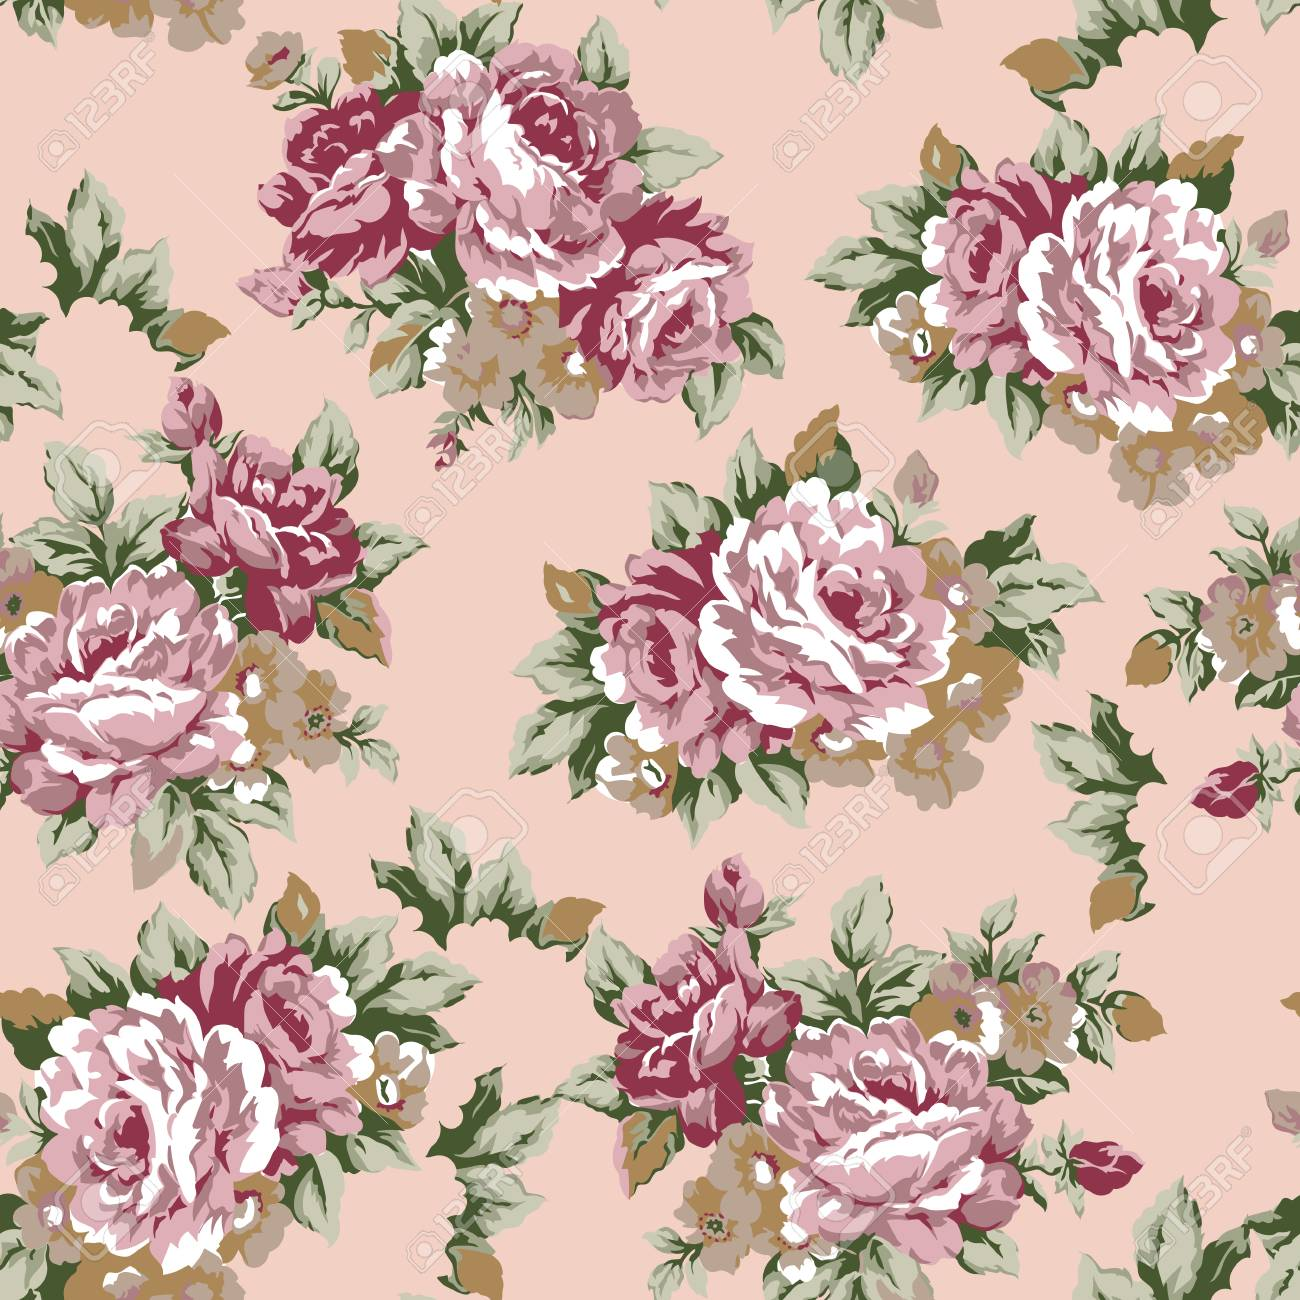 Shabby Chic Or Granny Chic Vintage Chintz Roses Seamless Pattern 1300x1300